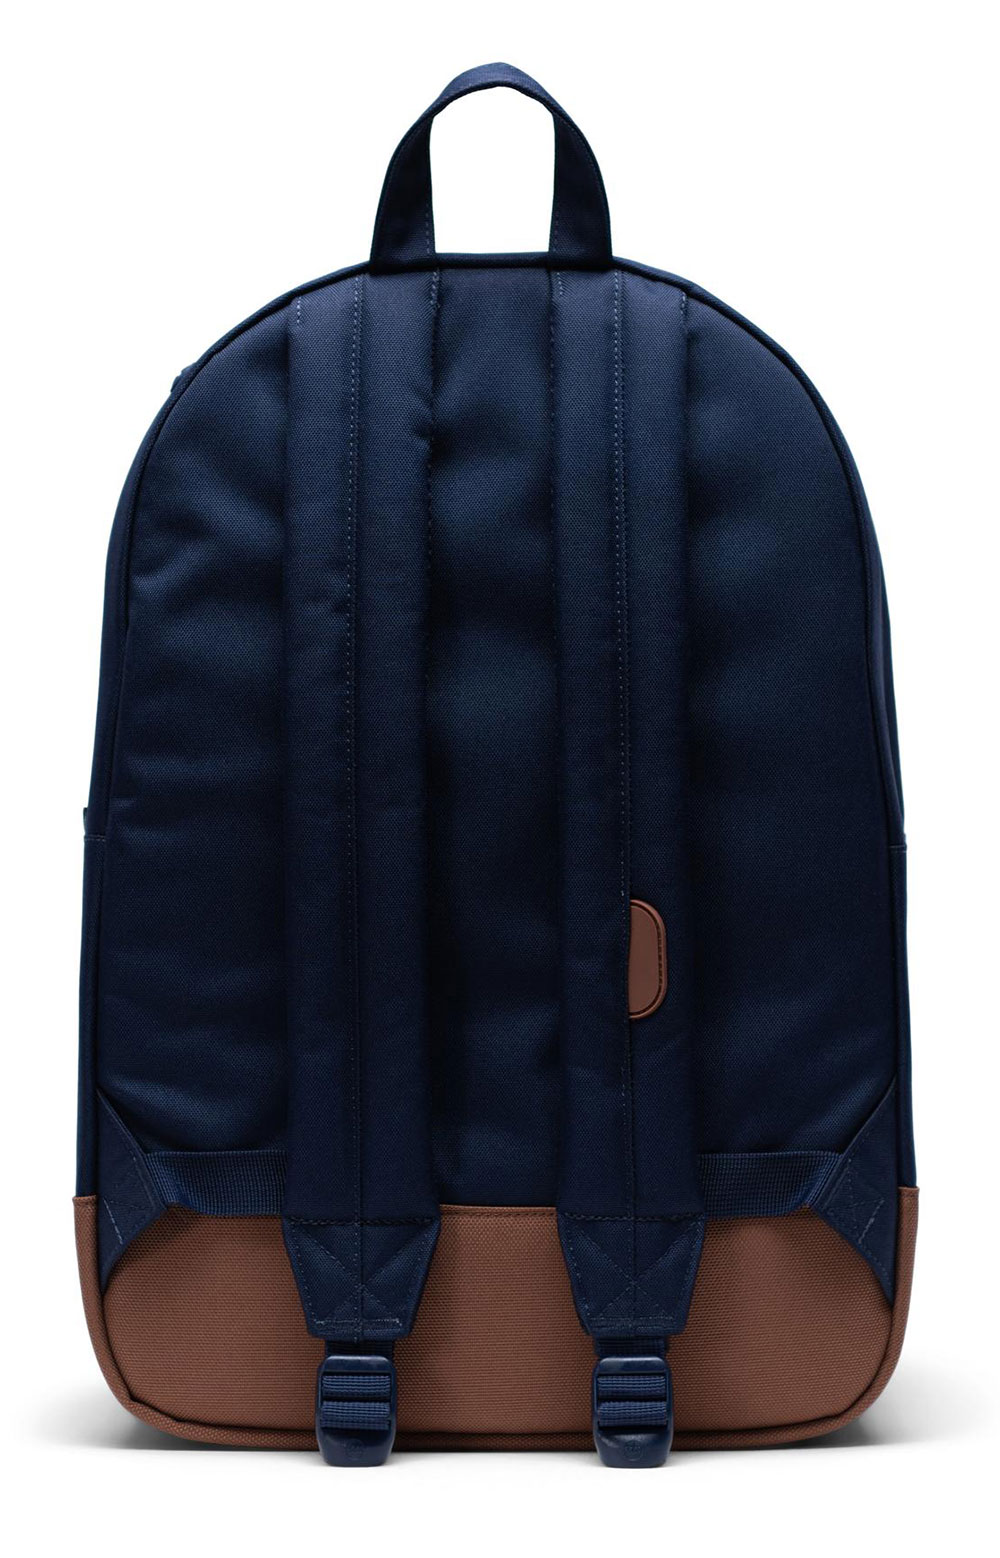 Heritage Backpack - Peacoat/Saddle Brown 4